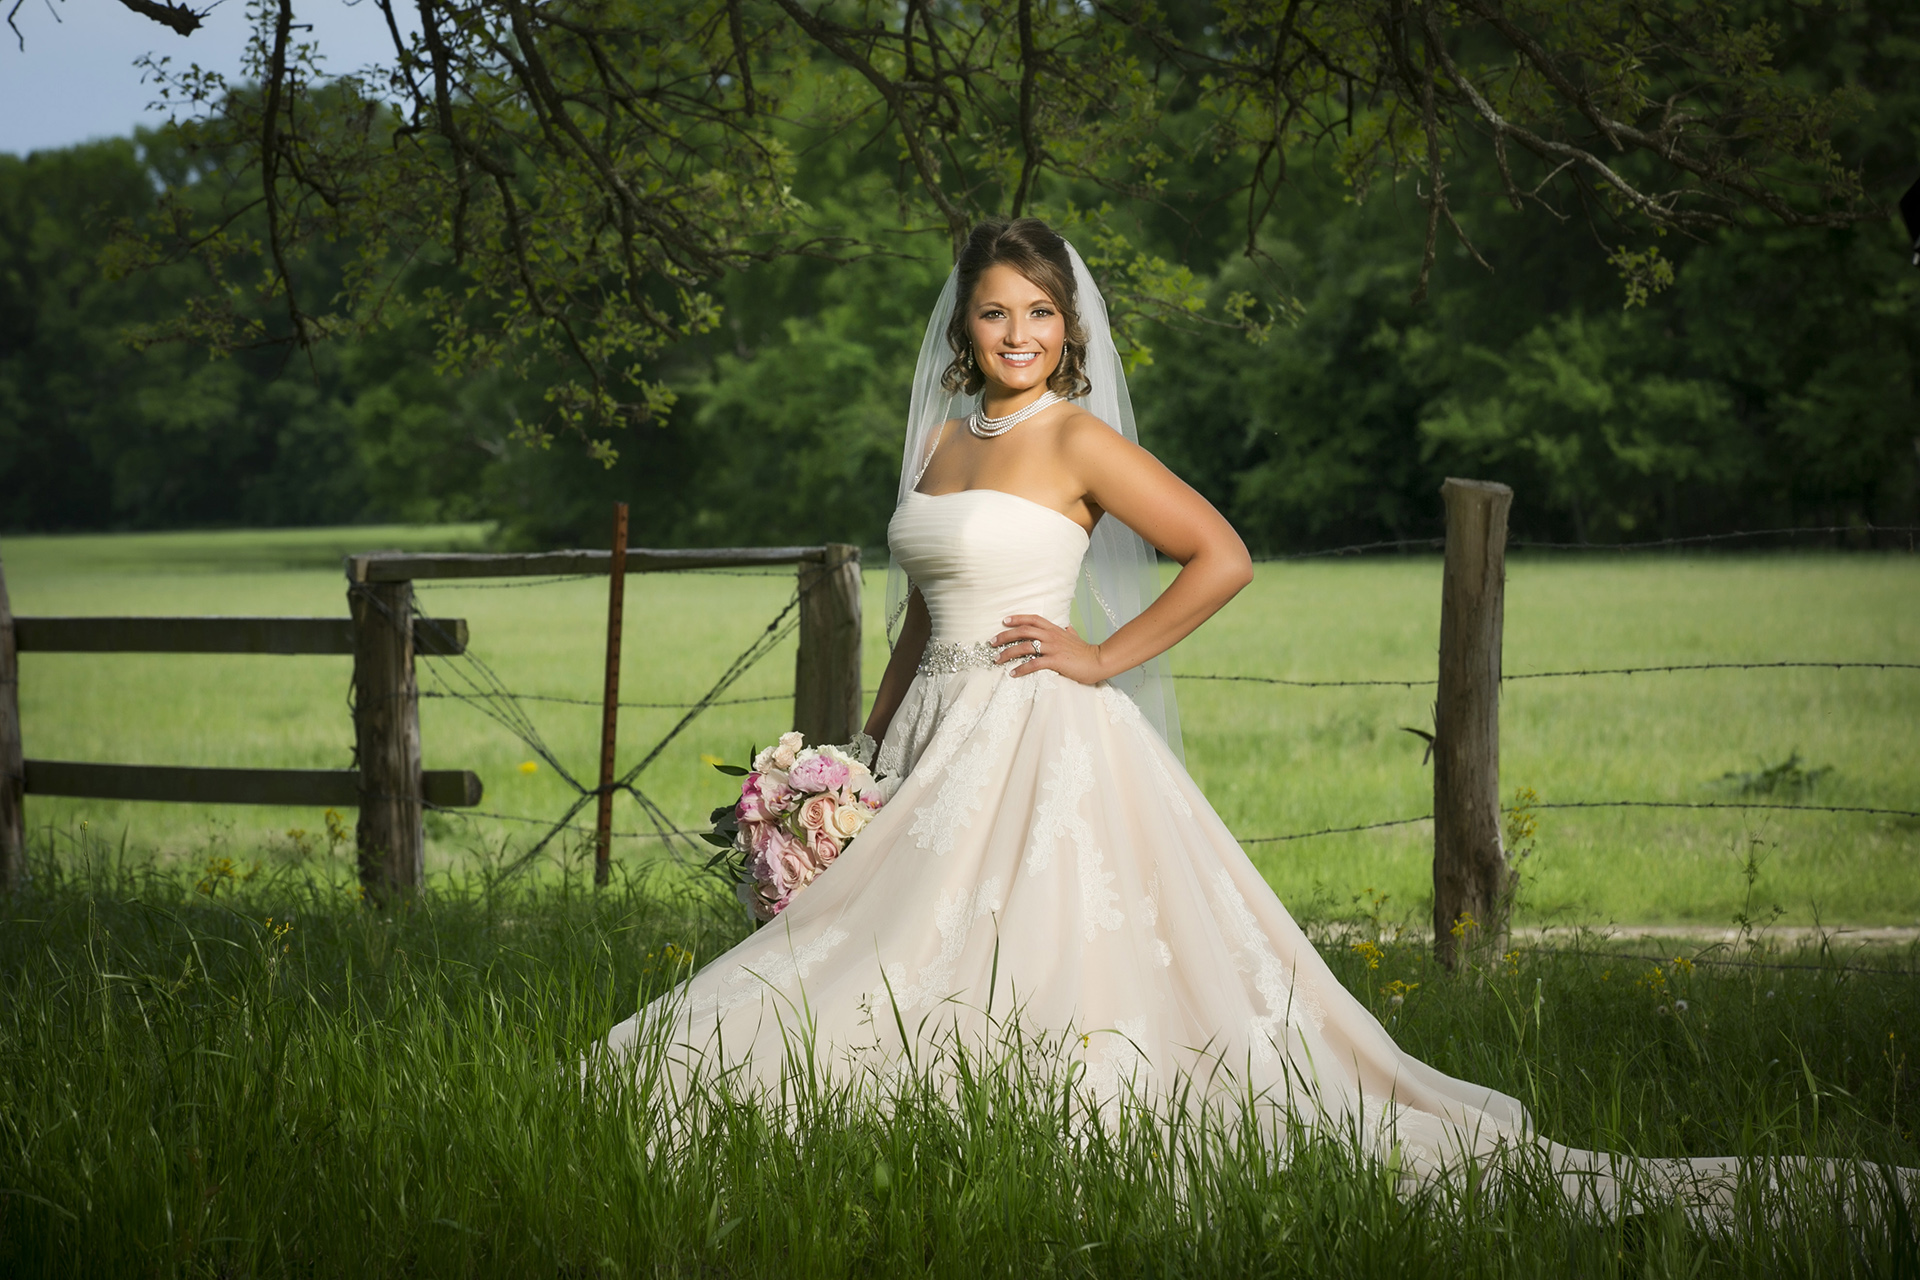 StoneOak Ranch Bridal Wedding